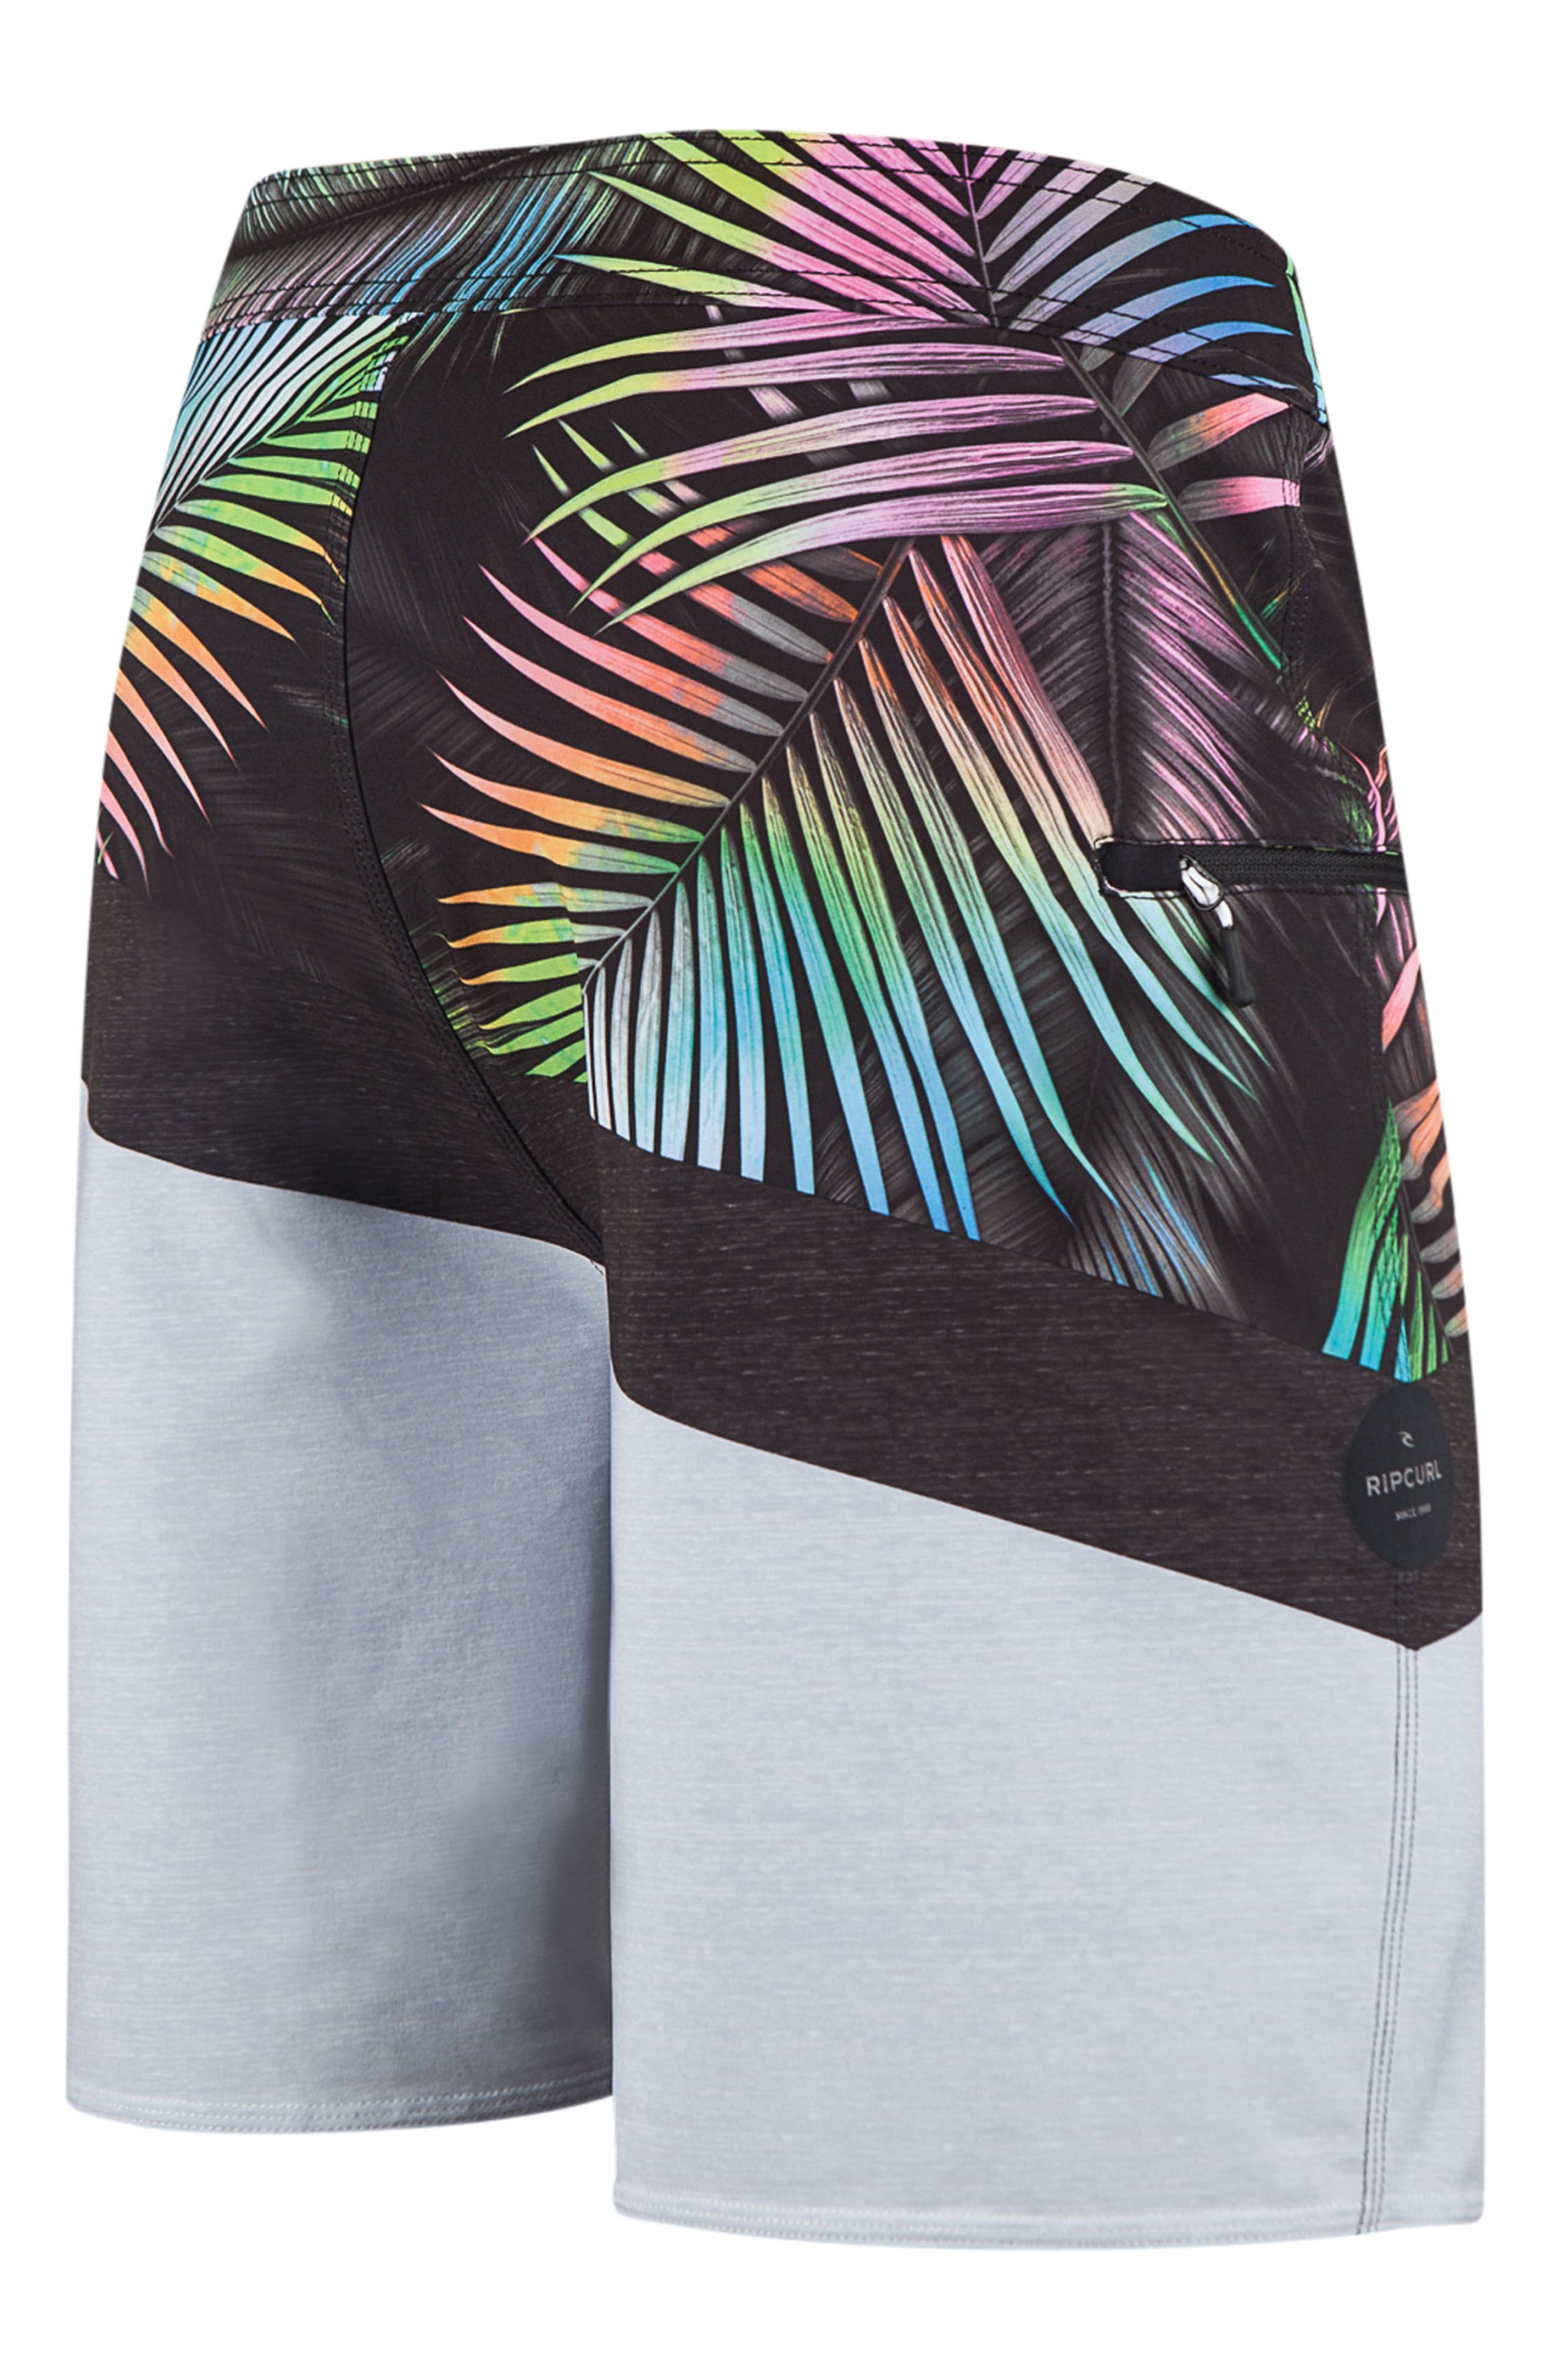 Mirage Incline Board Shorts,                             Alternate thumbnail 2, color,                             001